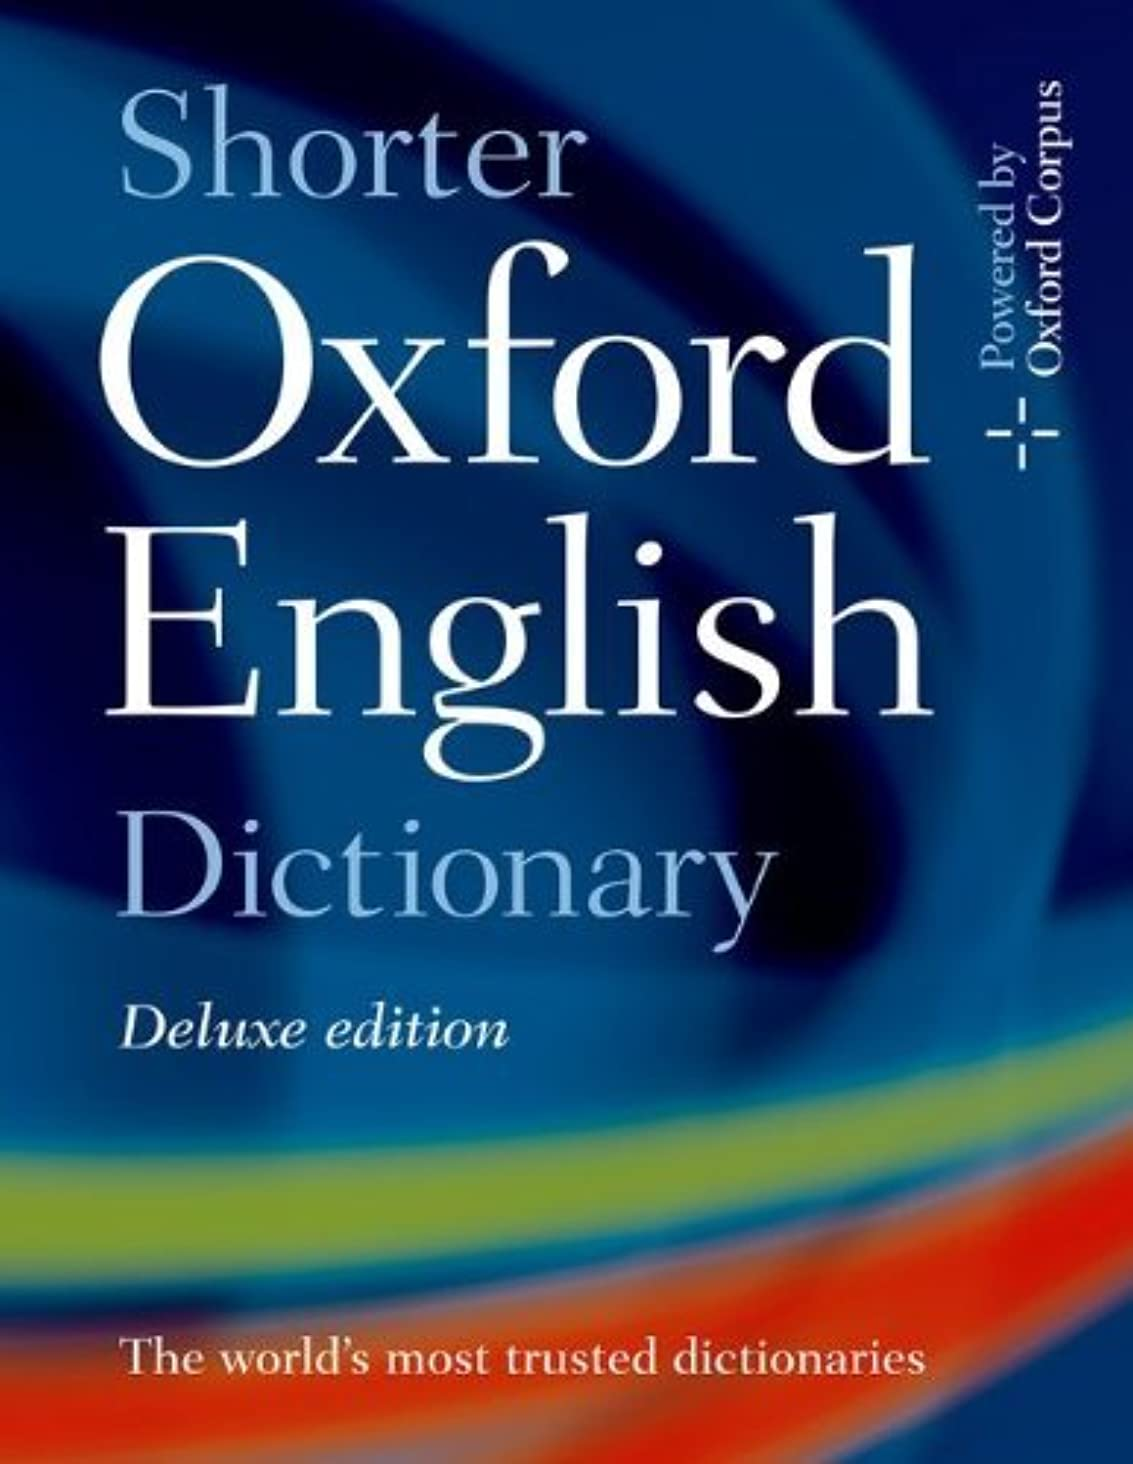 By Oxford Dictionaries. Shorter Oxford English Dictionary Deluxe Edition (Deluxe Ed) [Hardcover]